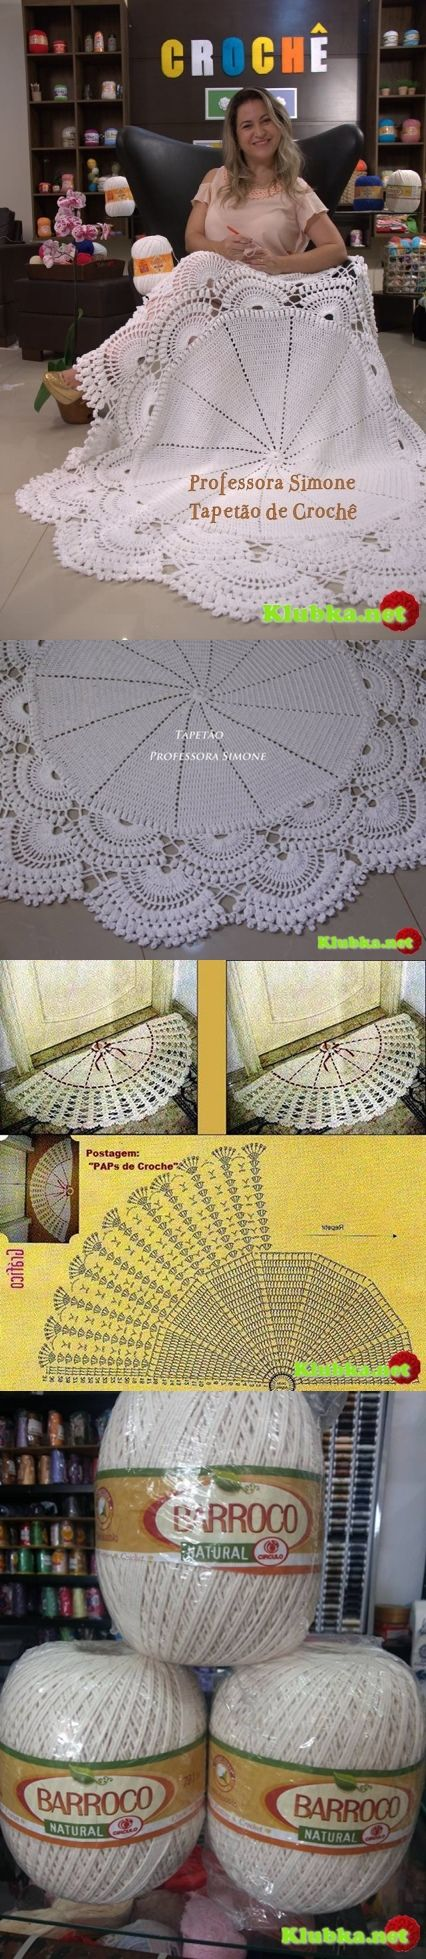 Crocheted Round Tablecloth http://www.liveinternet.ru/users/2981374/post360093616/